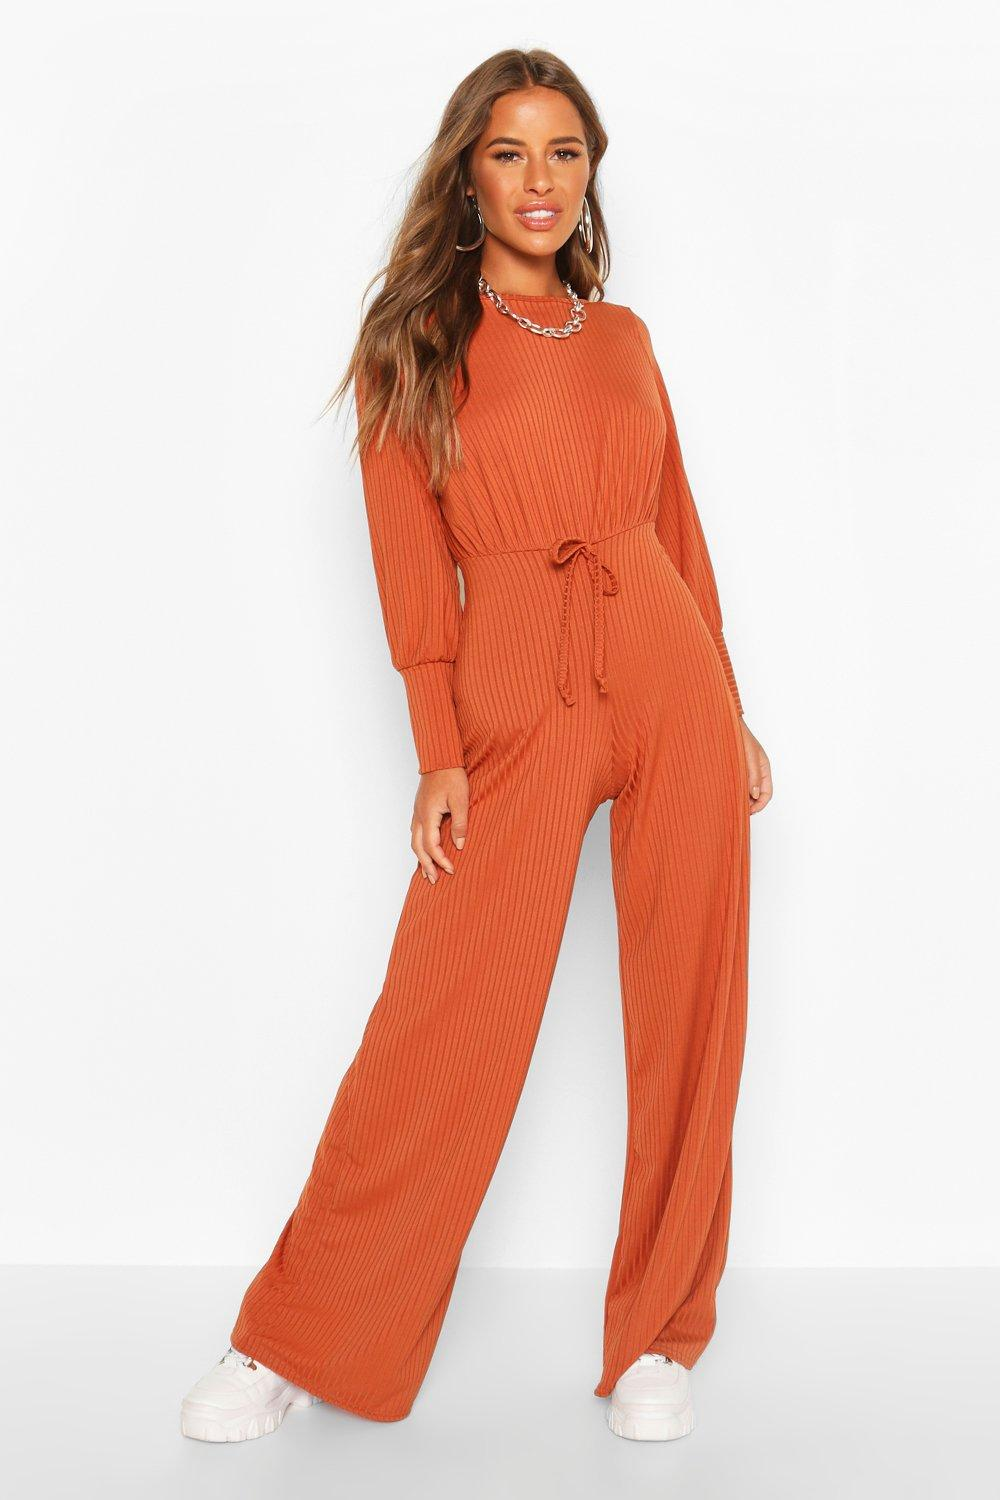 boohoo Womens Petite Ribbed Wide Leg Jumpsuit - Orange - 10, Orange